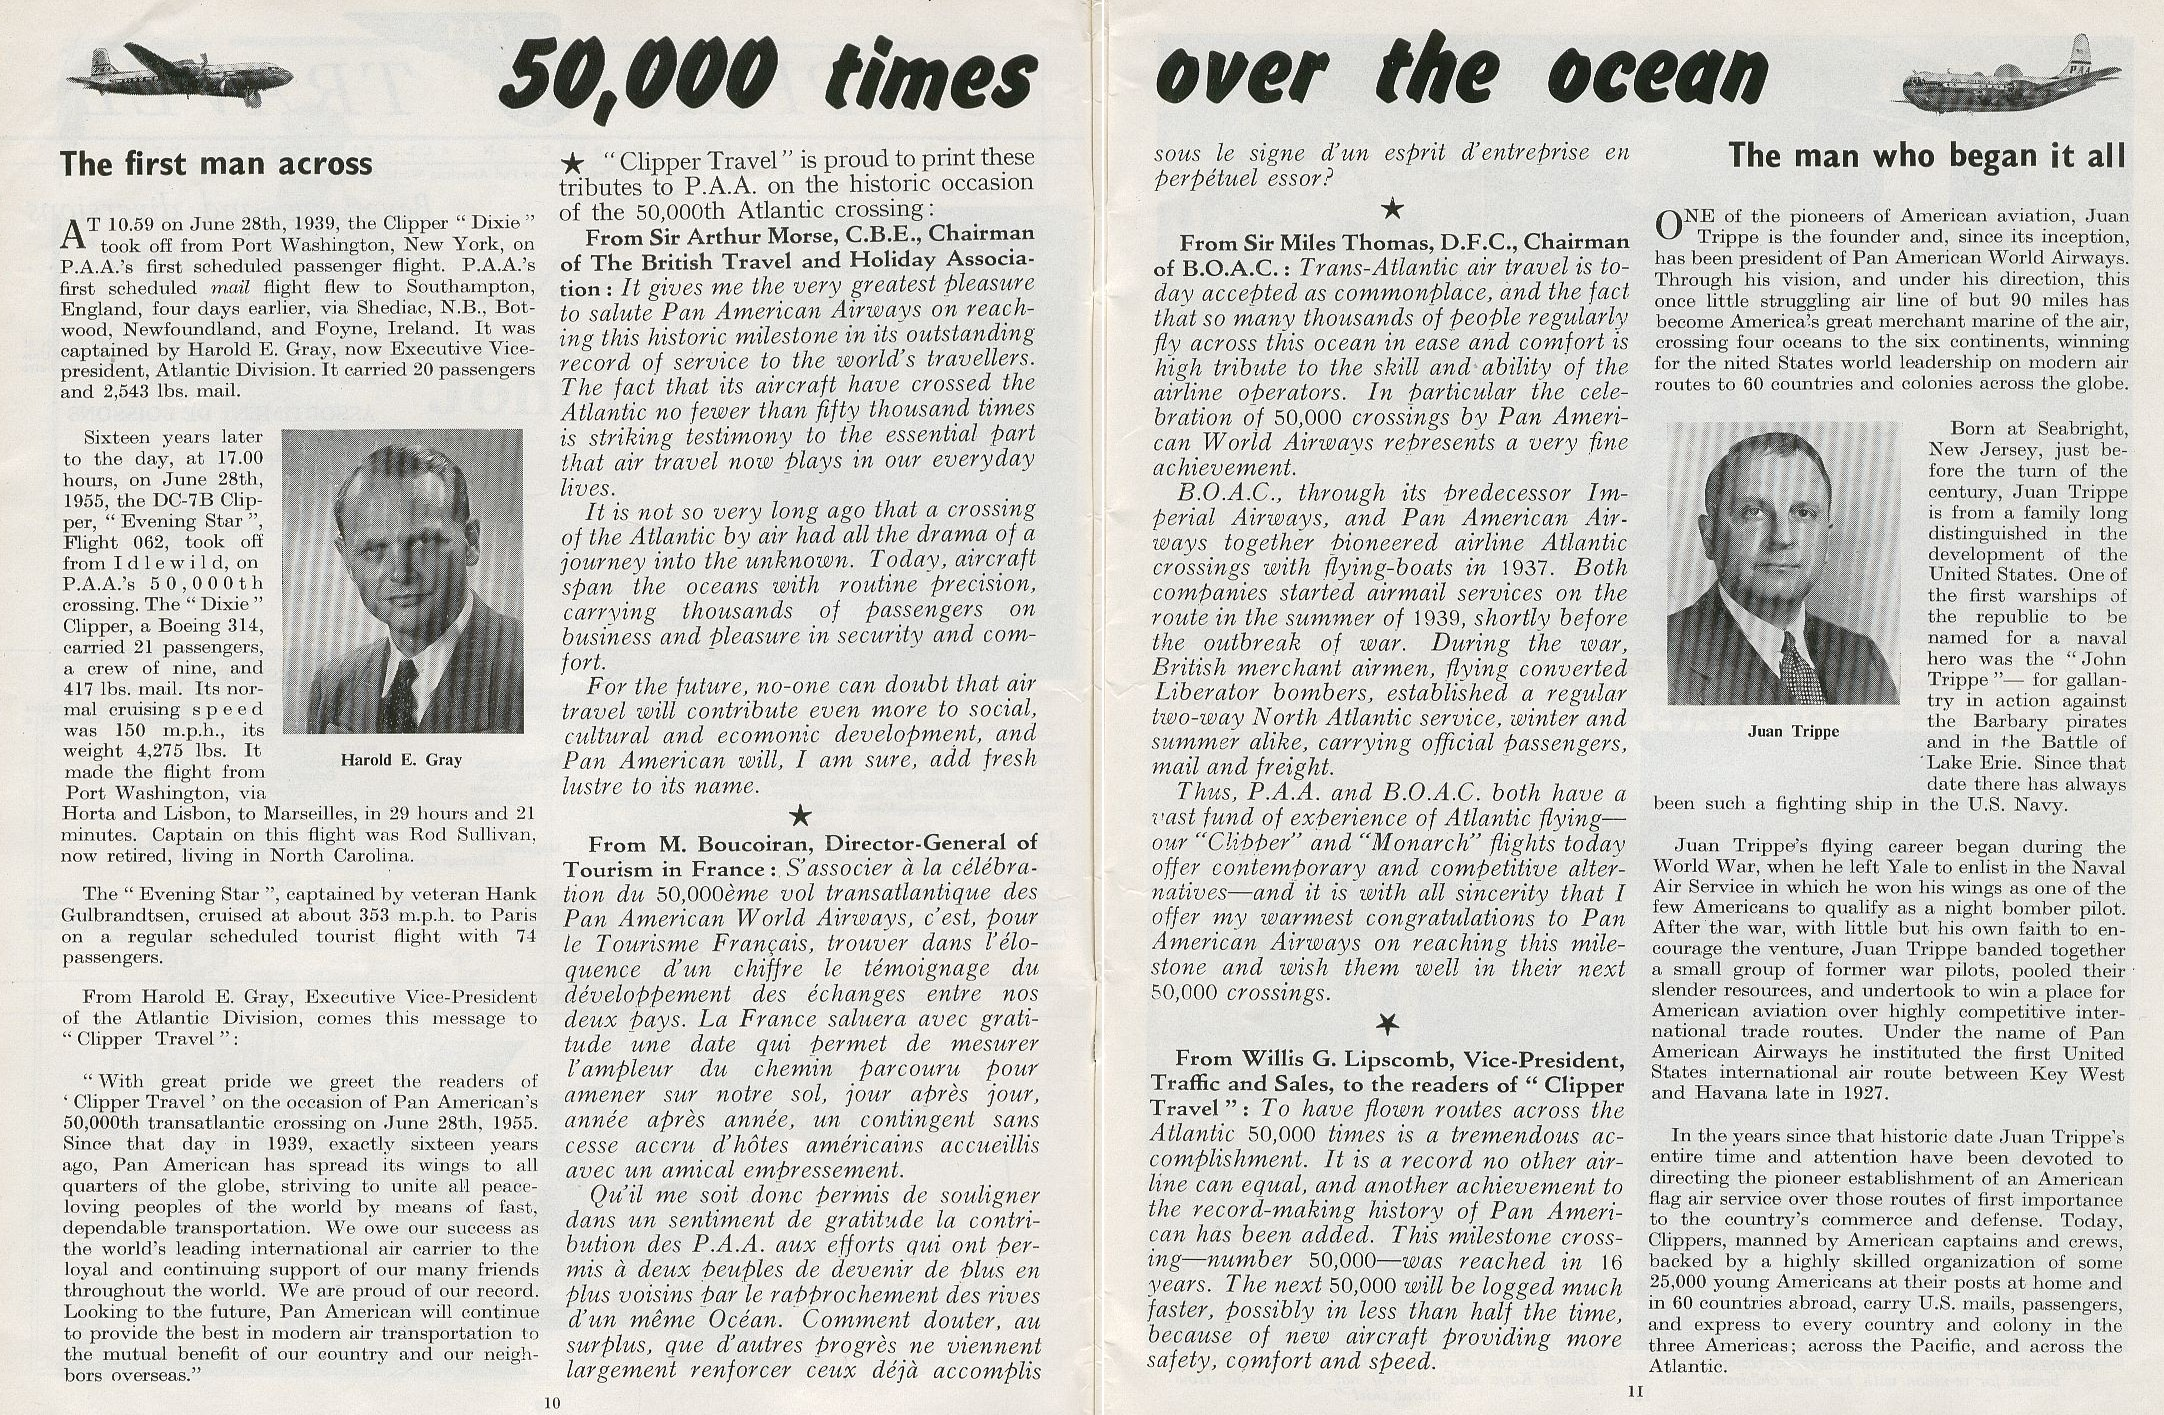 1955, July, An article on Pan Am's 50,000th Atlantic Crossing and comments by various leaders in aviation.  Mentioned in the article are Harold Gray, Pan Am's first Trans-Atlantic Captain and Juan Trippe the founder of Pan Am.